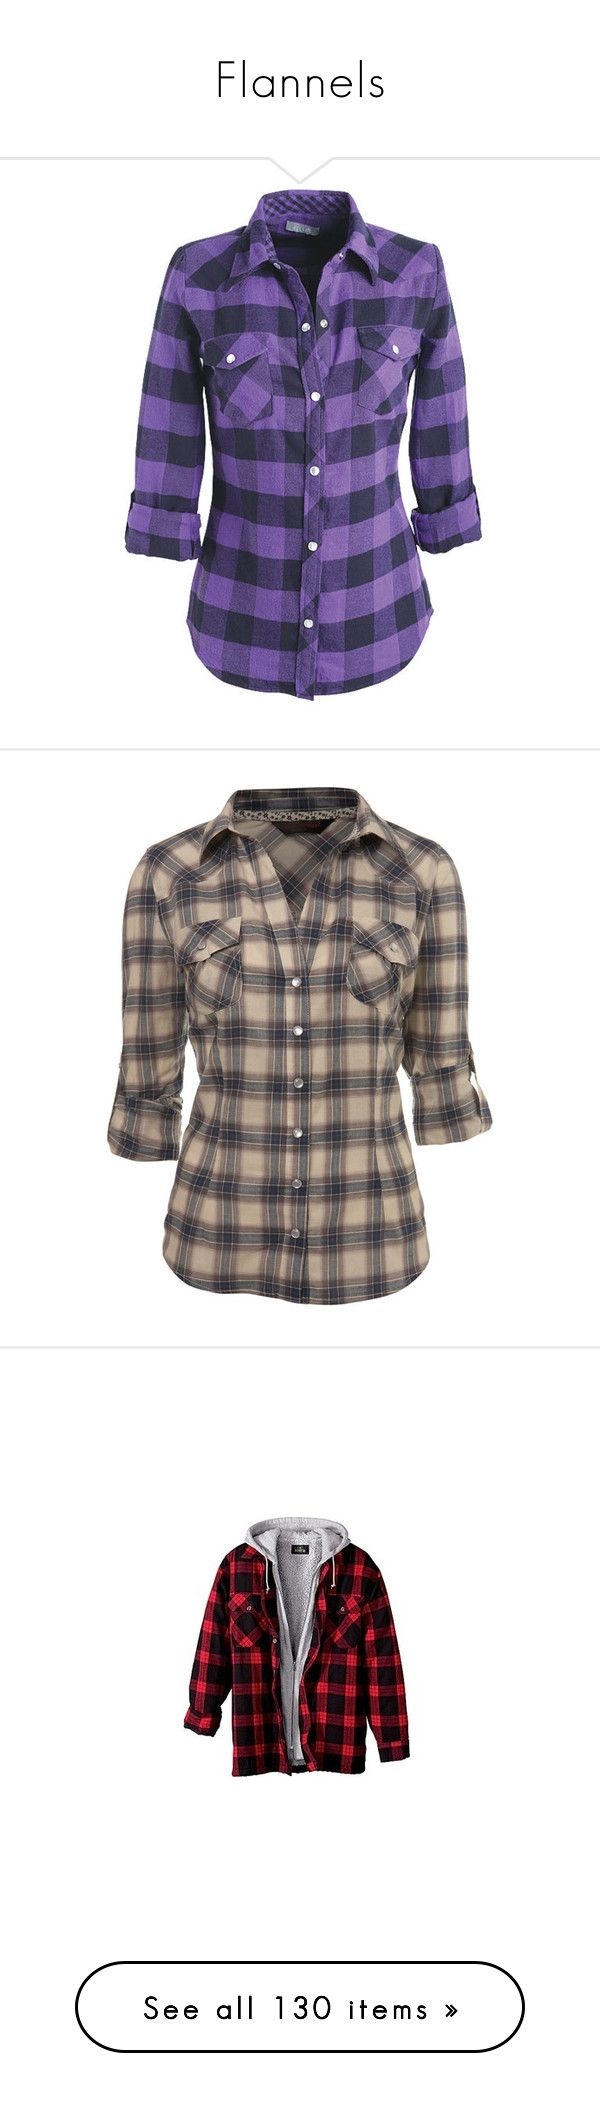 """""""Flannels"""" by vivianr5 ❤ liked on Polyvore featuring tops, shirts, blusas, plaid, shirts & blouses, tartan flannel shirt, plaid shirts, plaid flannel shirt, flannel shirts and purple plaid shirt"""